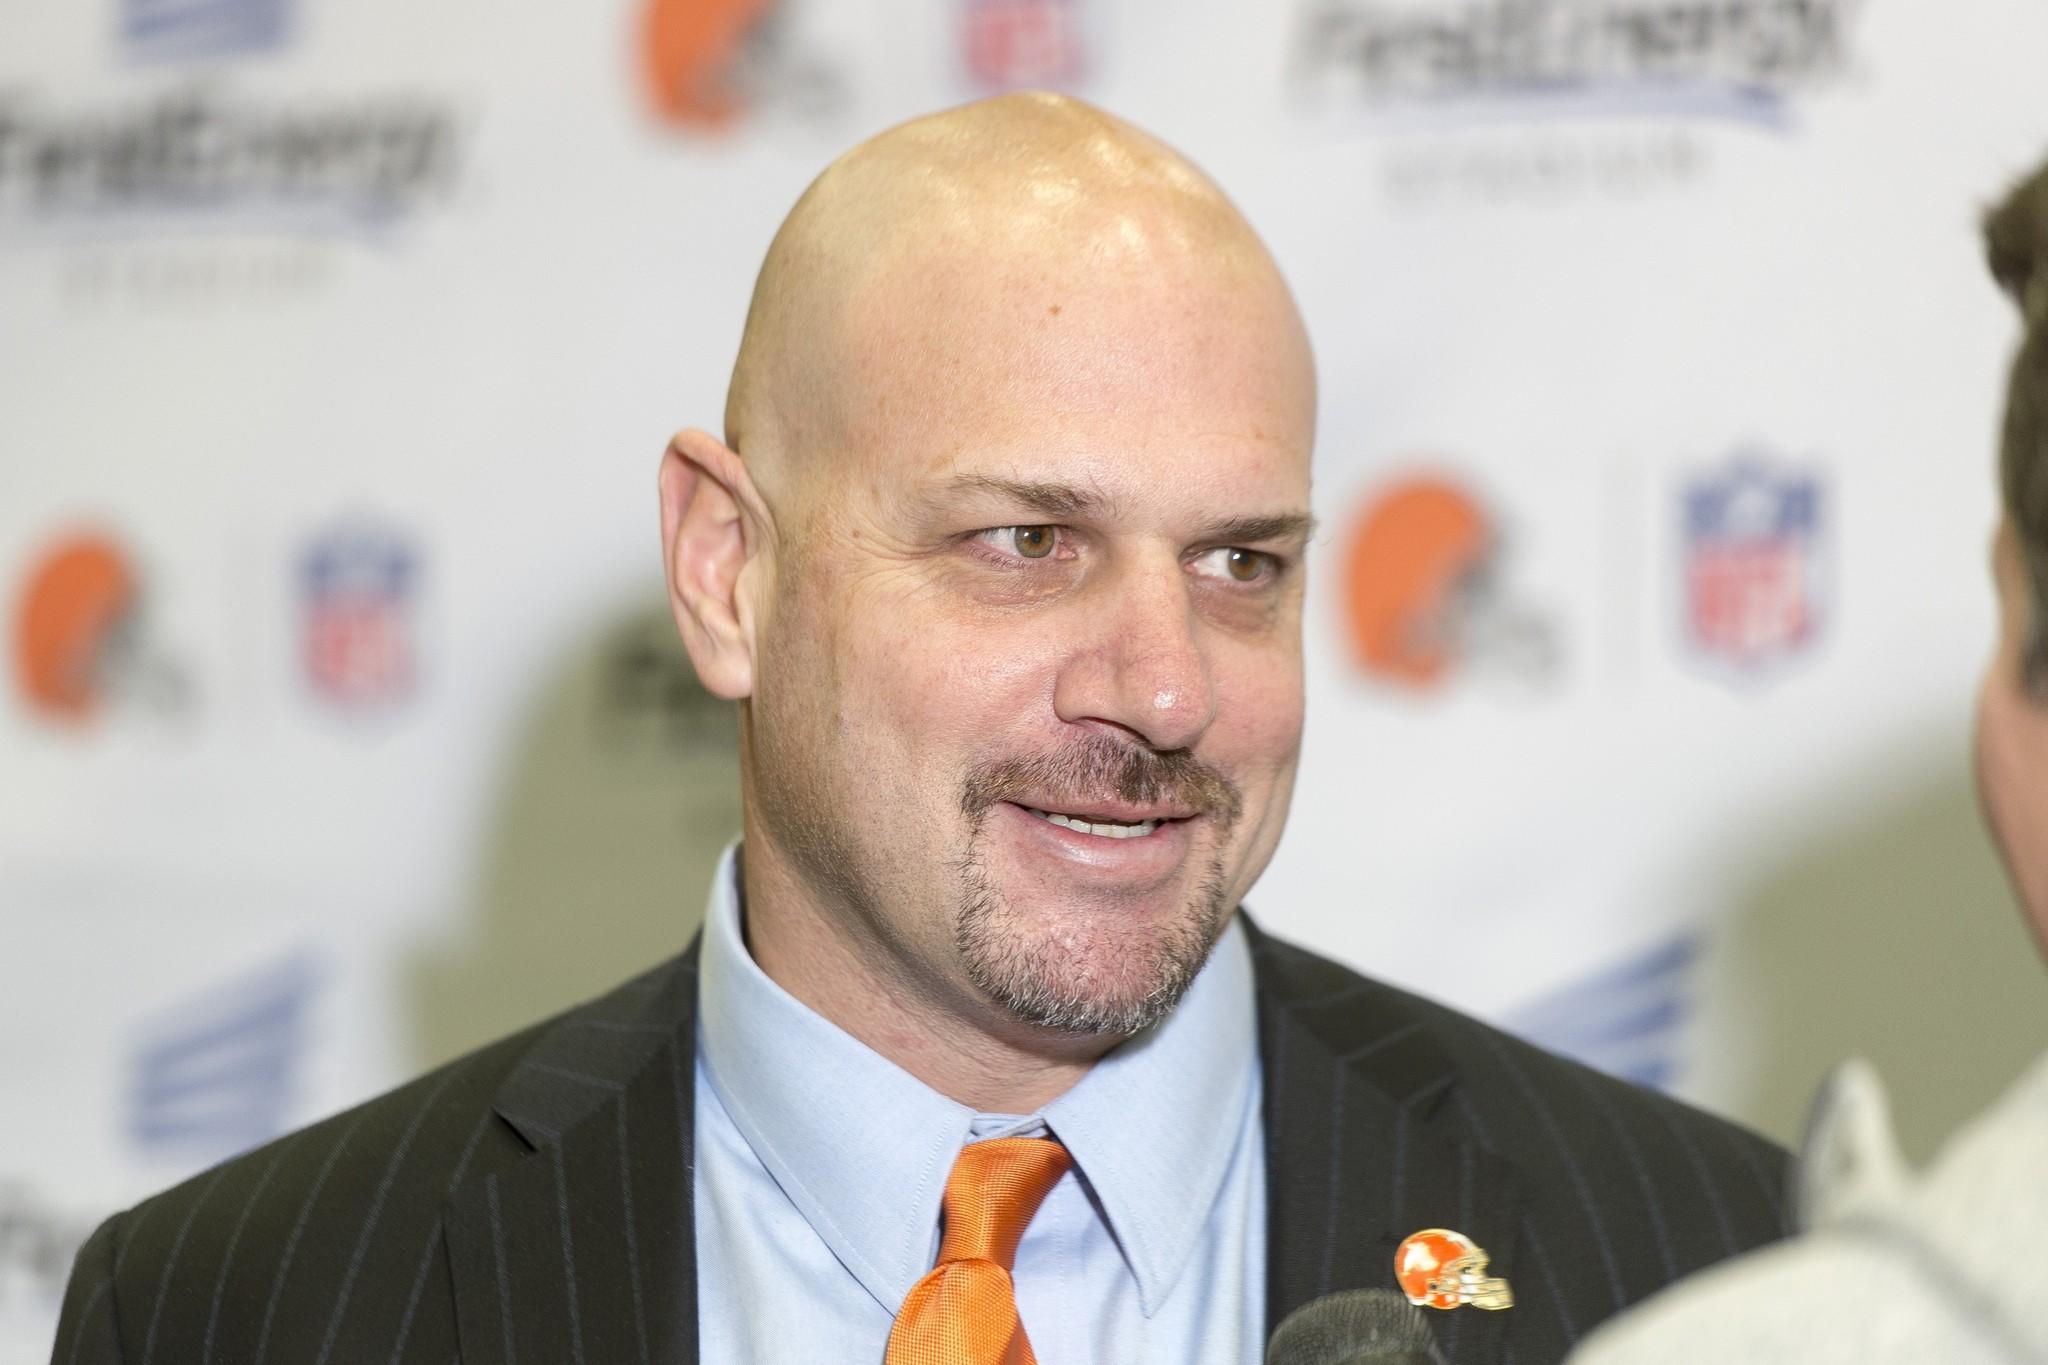 New Browns coach Mike Pettine fields questions from the media during a press conference.